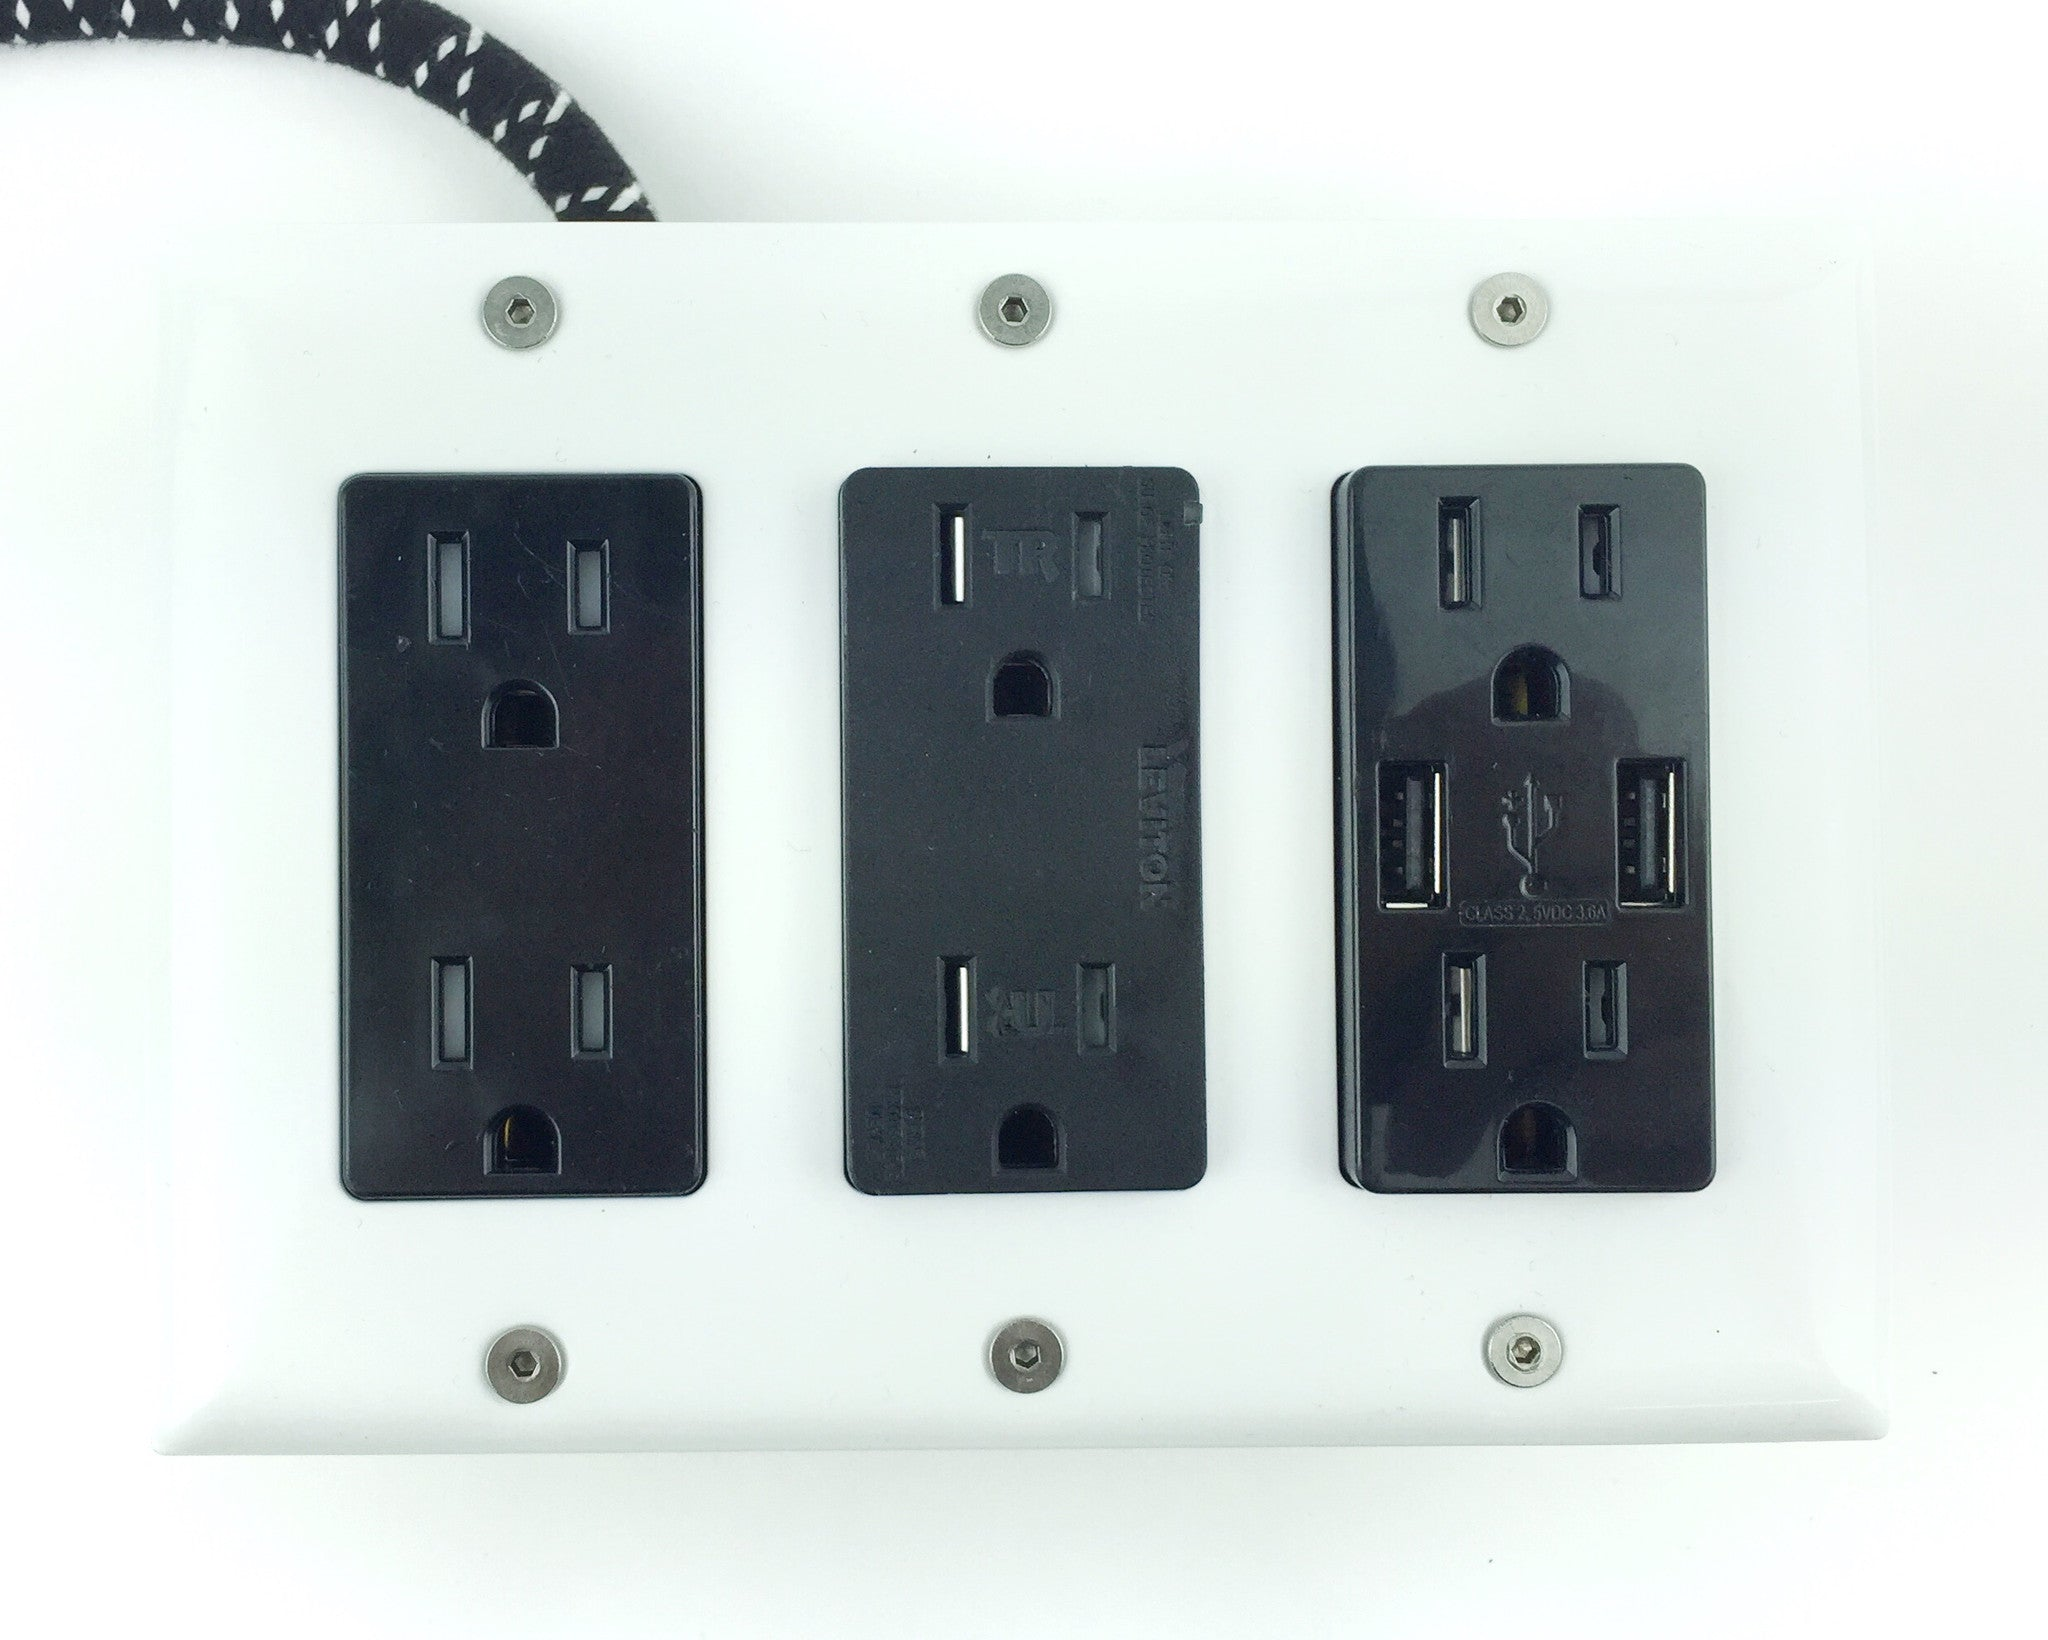 New! 6' Extō Surge 720 Smart Chip Surge-Protected Smart USB 6-Outlet Power Strip ACDC Black & White